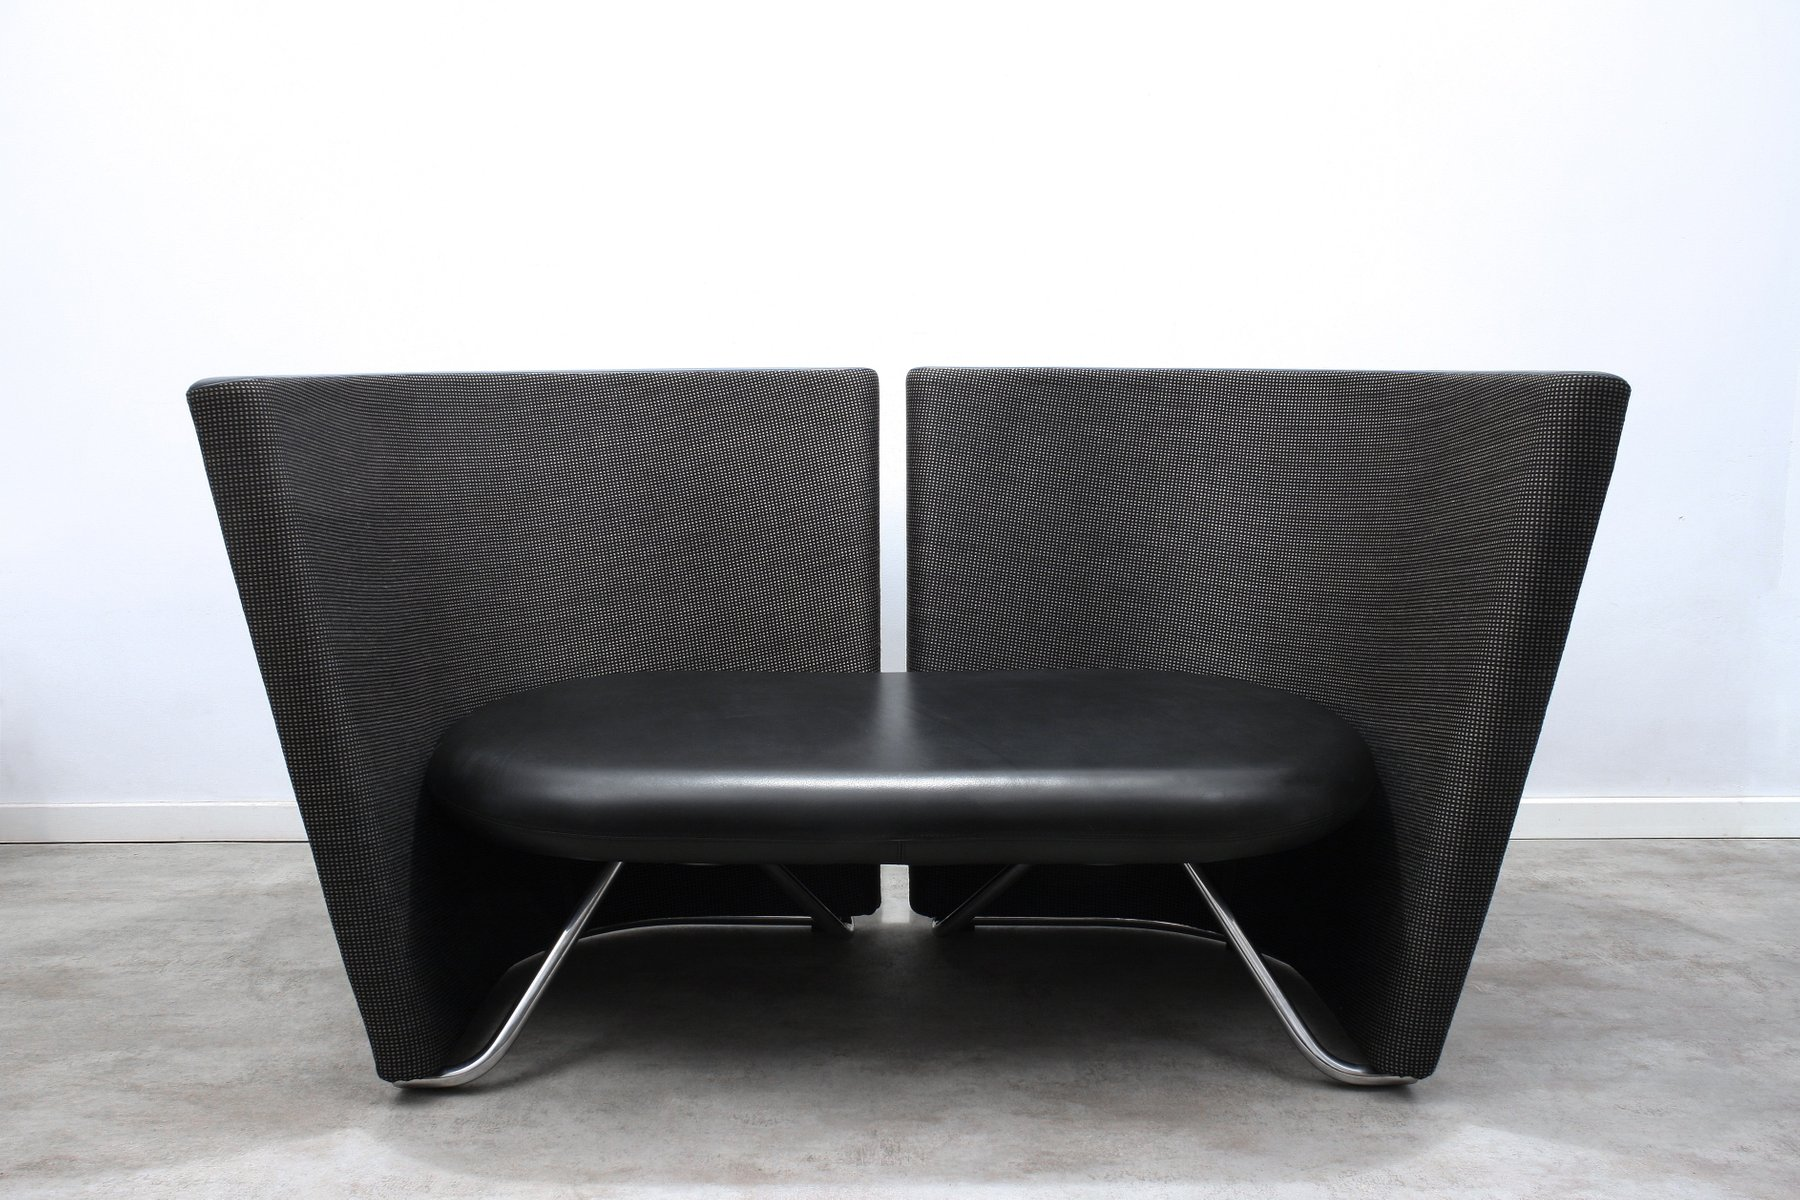 bang olufsen edition rotor sofa by foersom hiorth lorenzen for erik j rgensen 1980s for. Black Bedroom Furniture Sets. Home Design Ideas